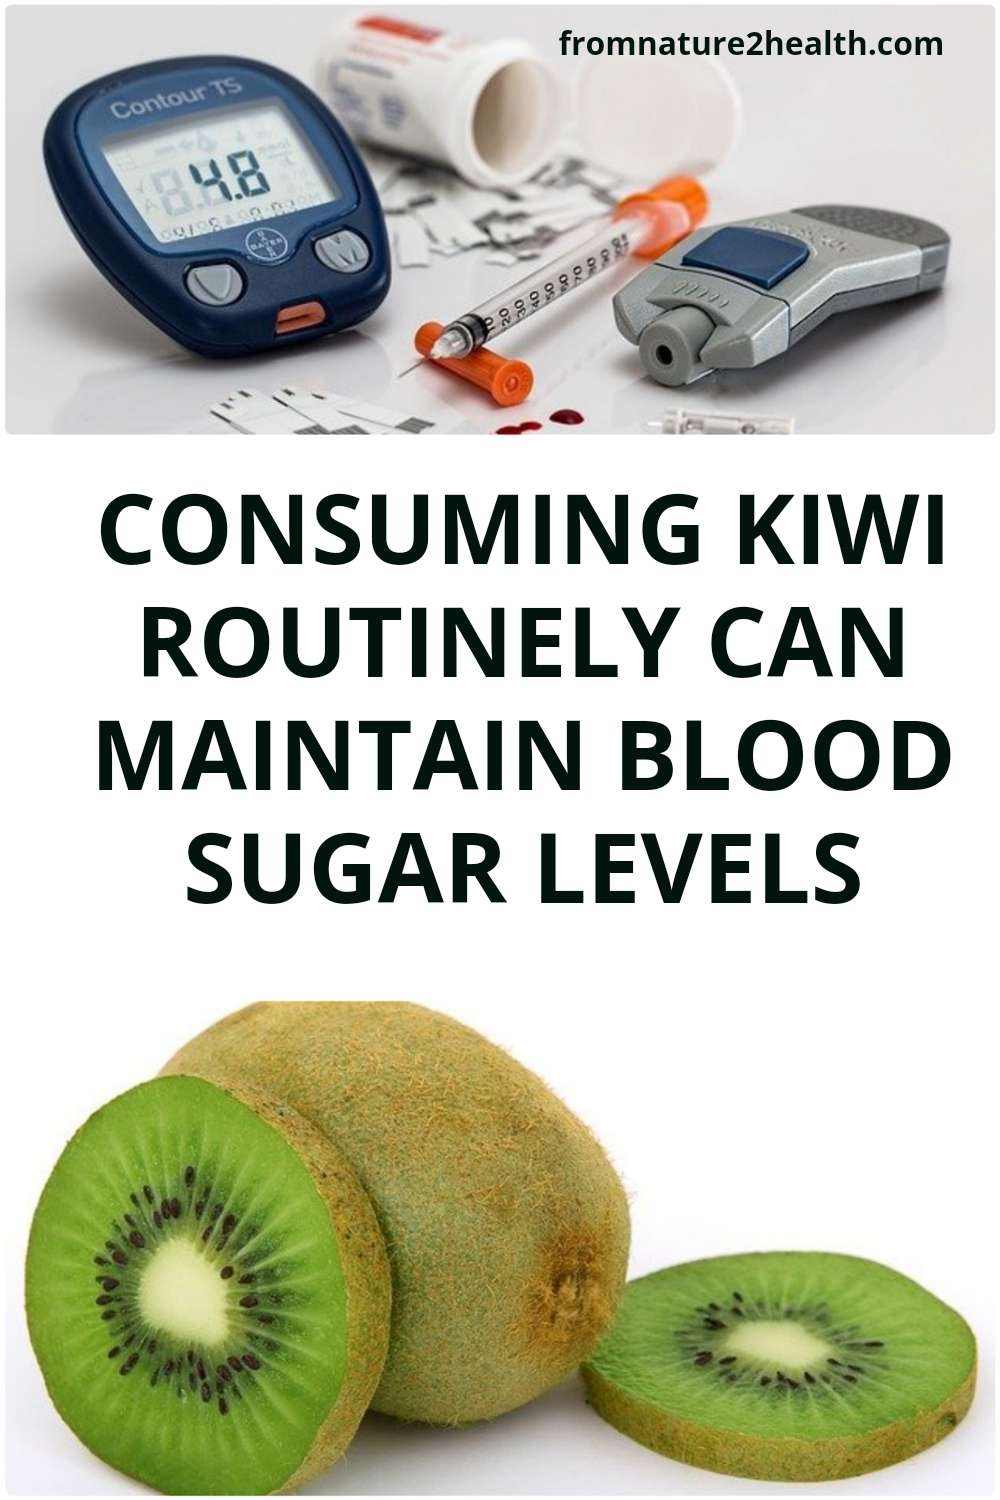 Consuming Kiwi Routinely Can Maintain Blood Sugar Levels